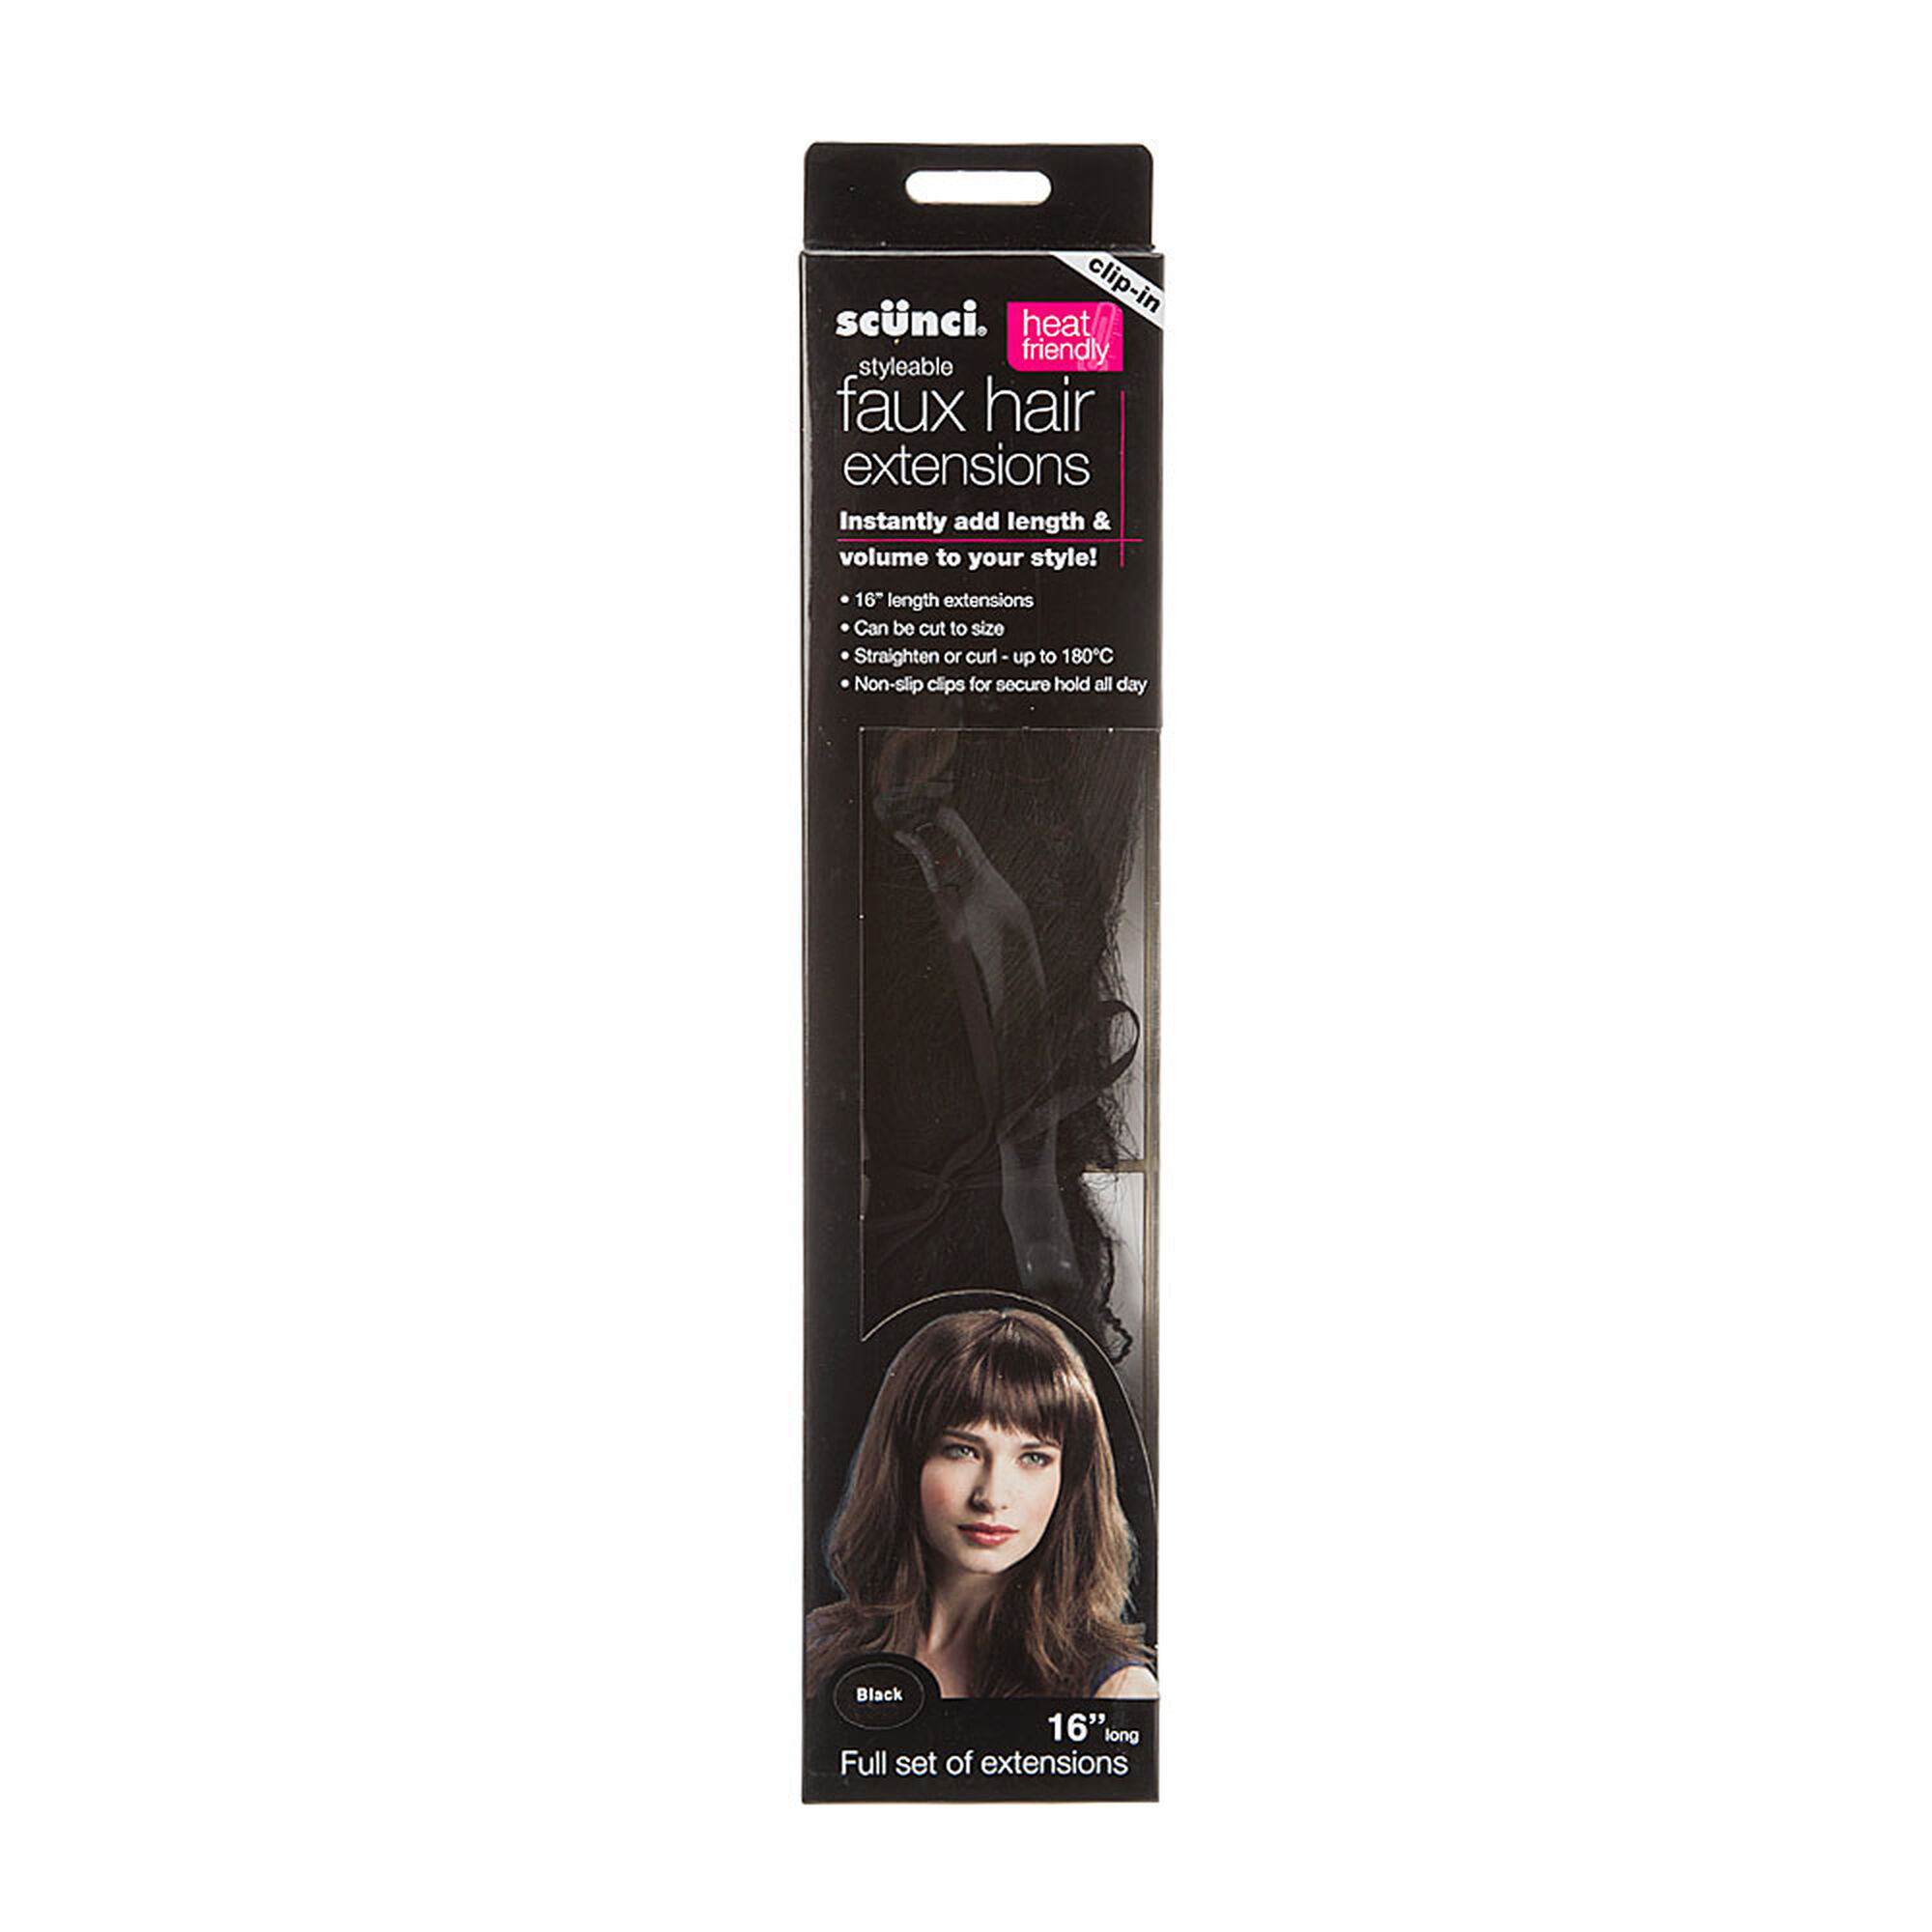 Black Styleable Faux Hair Extensions Icing Us